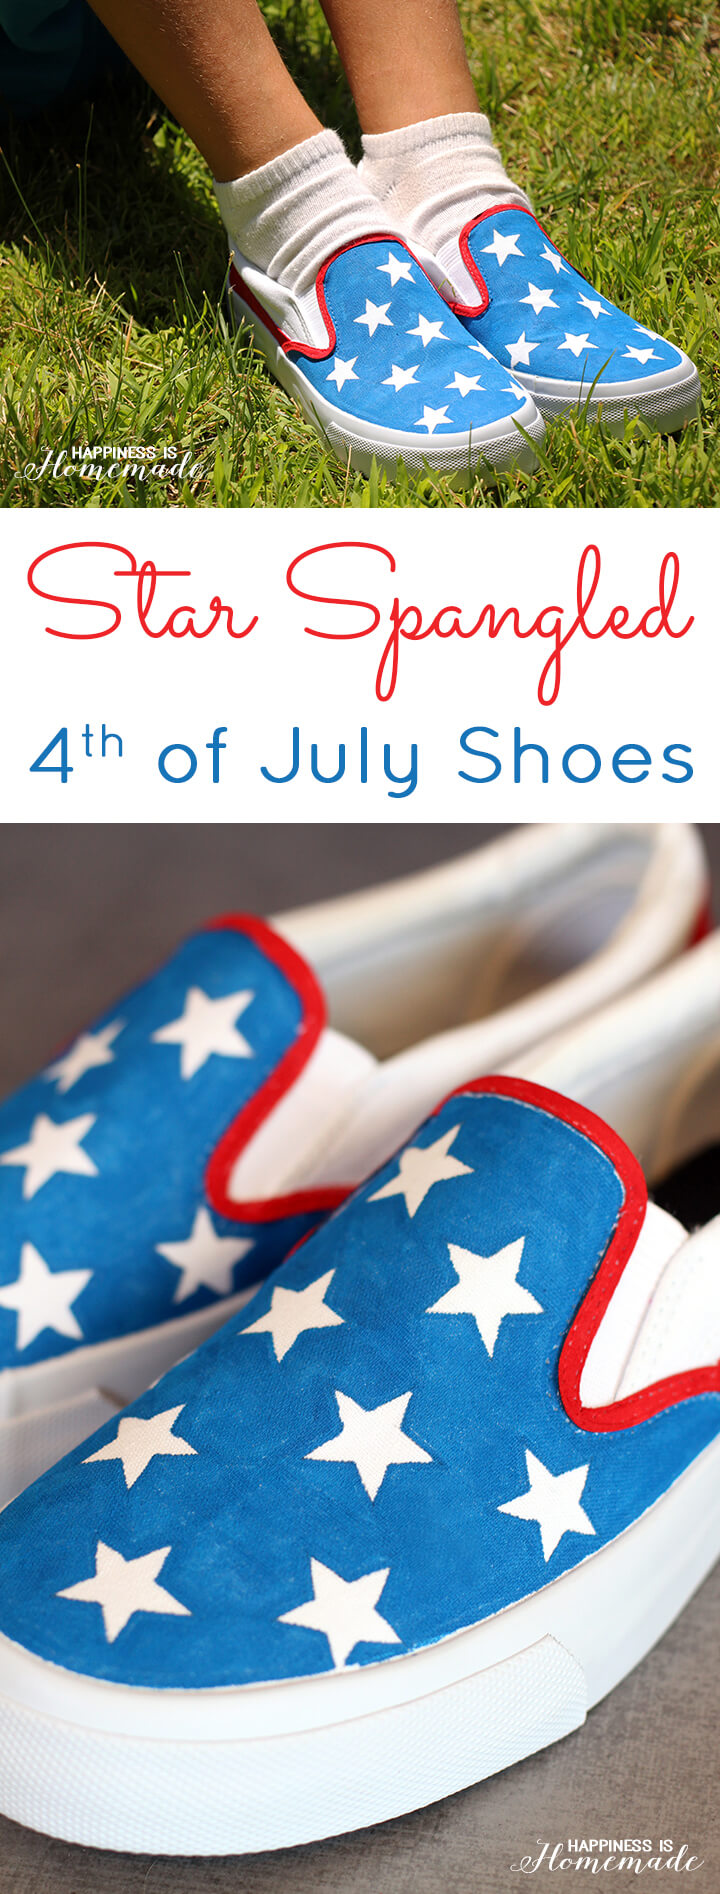 DIY Star Spangled Shoes 4th of July Craft